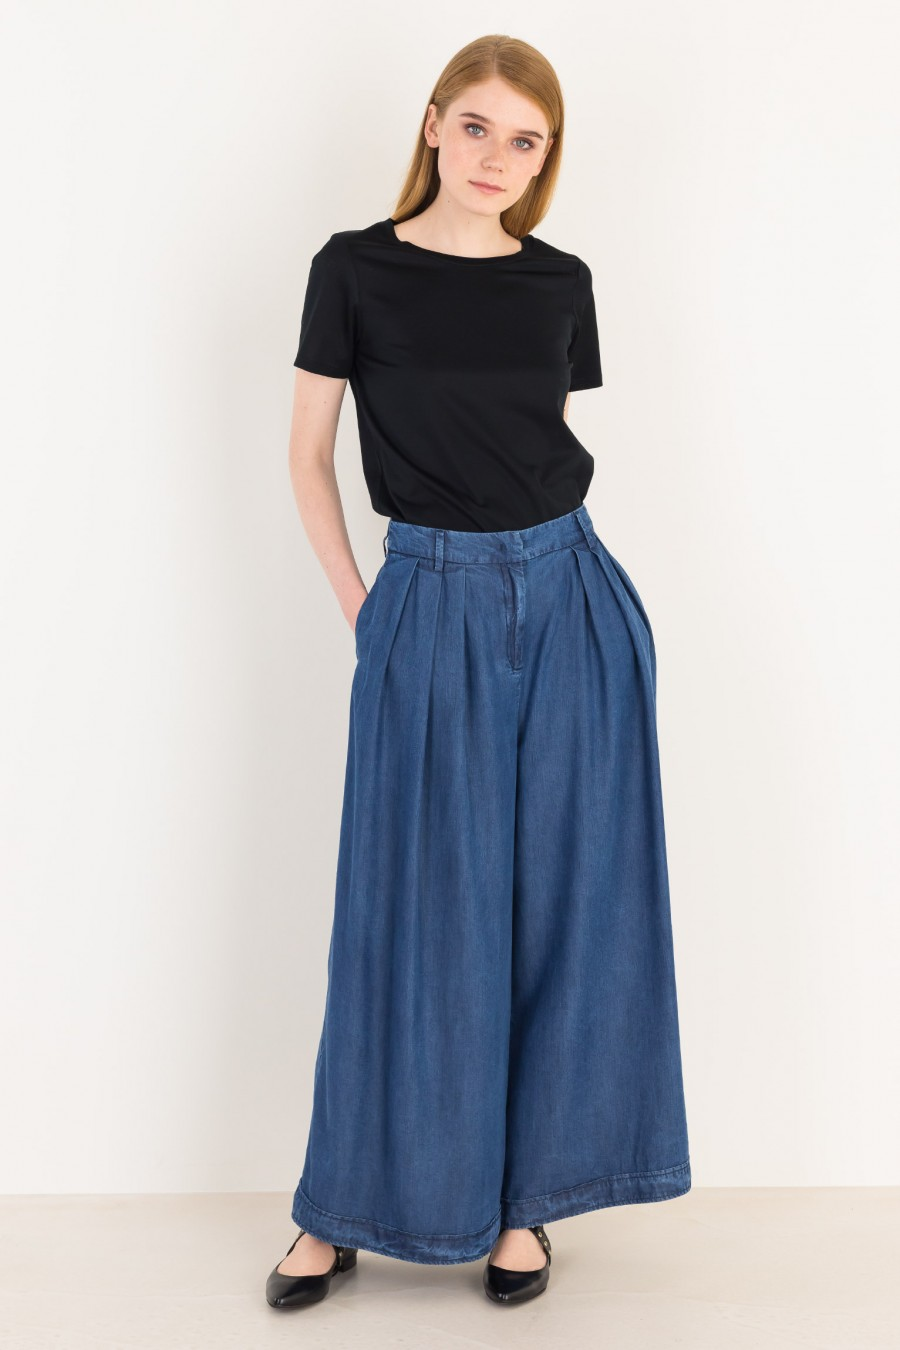 Gonna pantalone in jeans